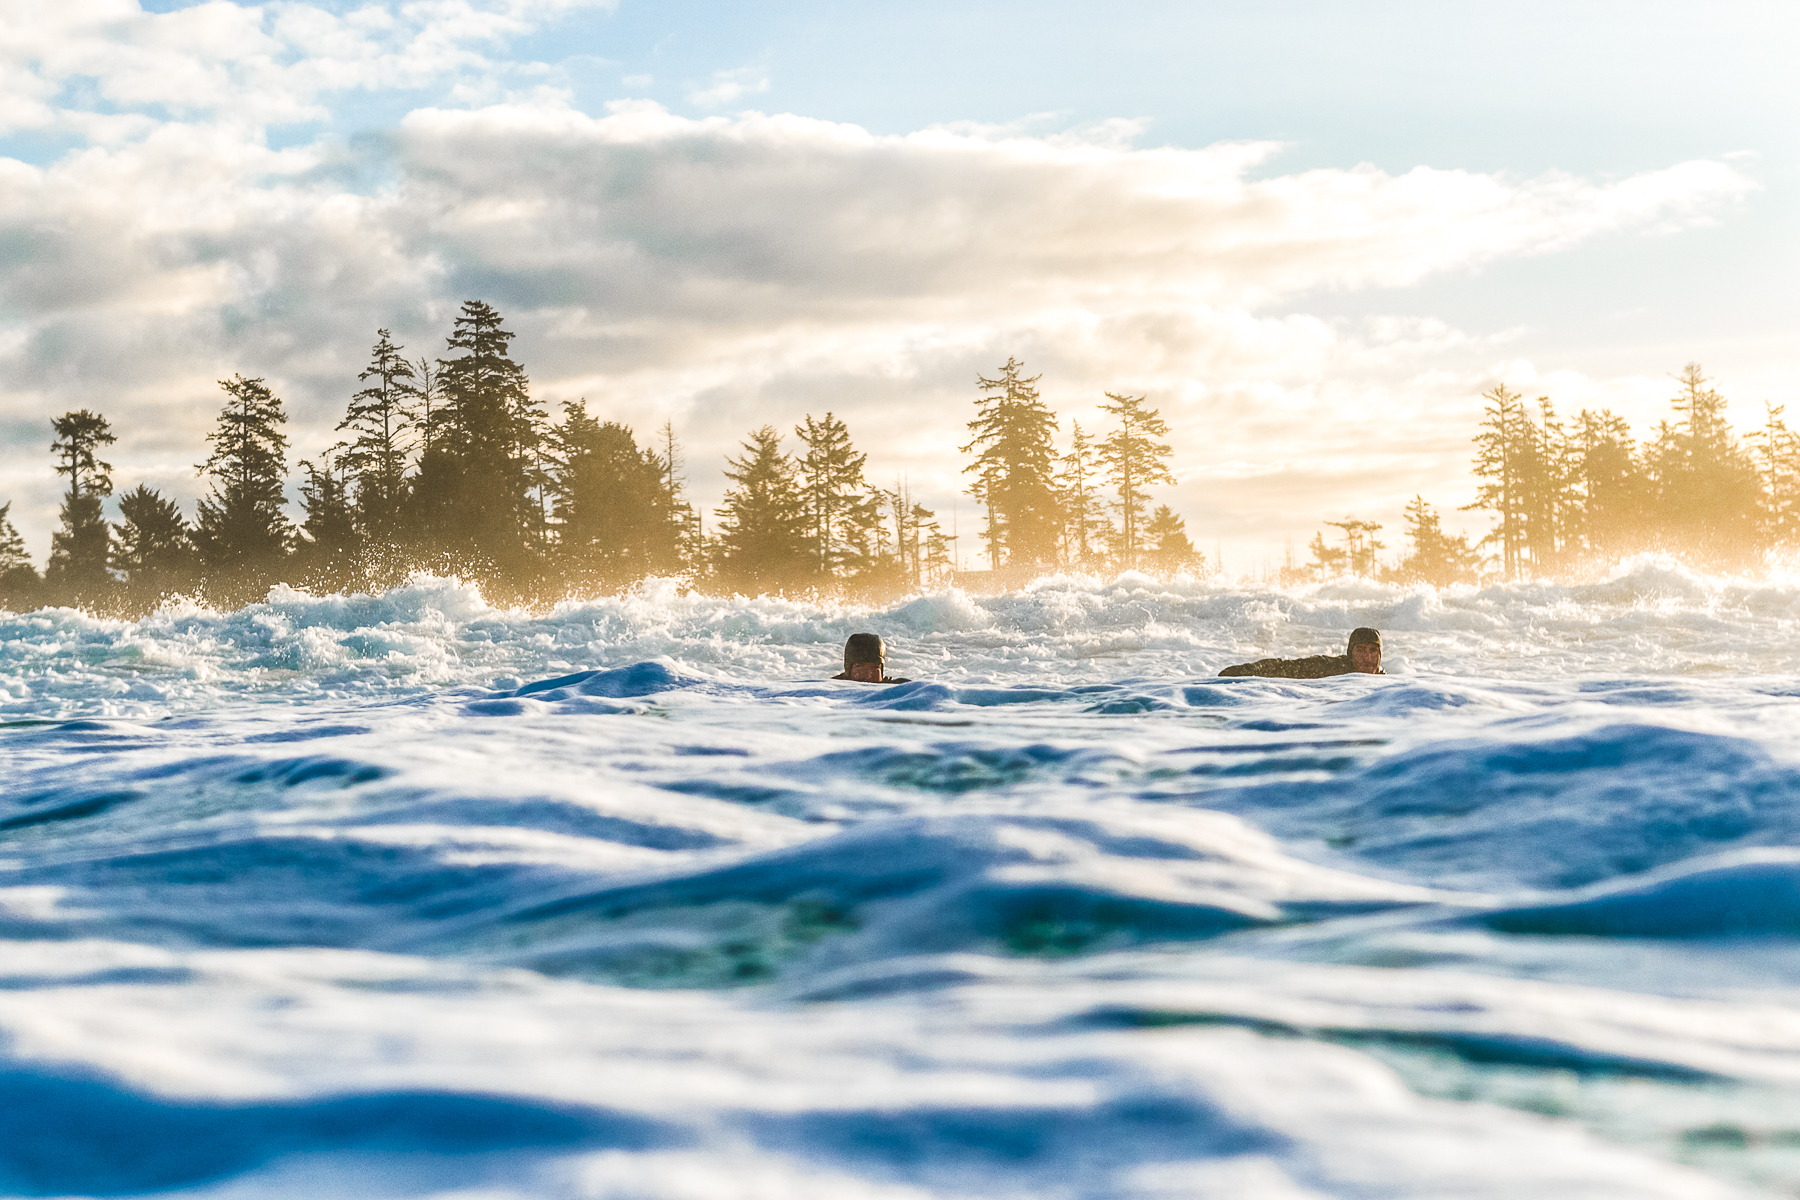 tofino_surf_photography_sunrise_paddle_outs_Vancouver_Isand_2018.jpg